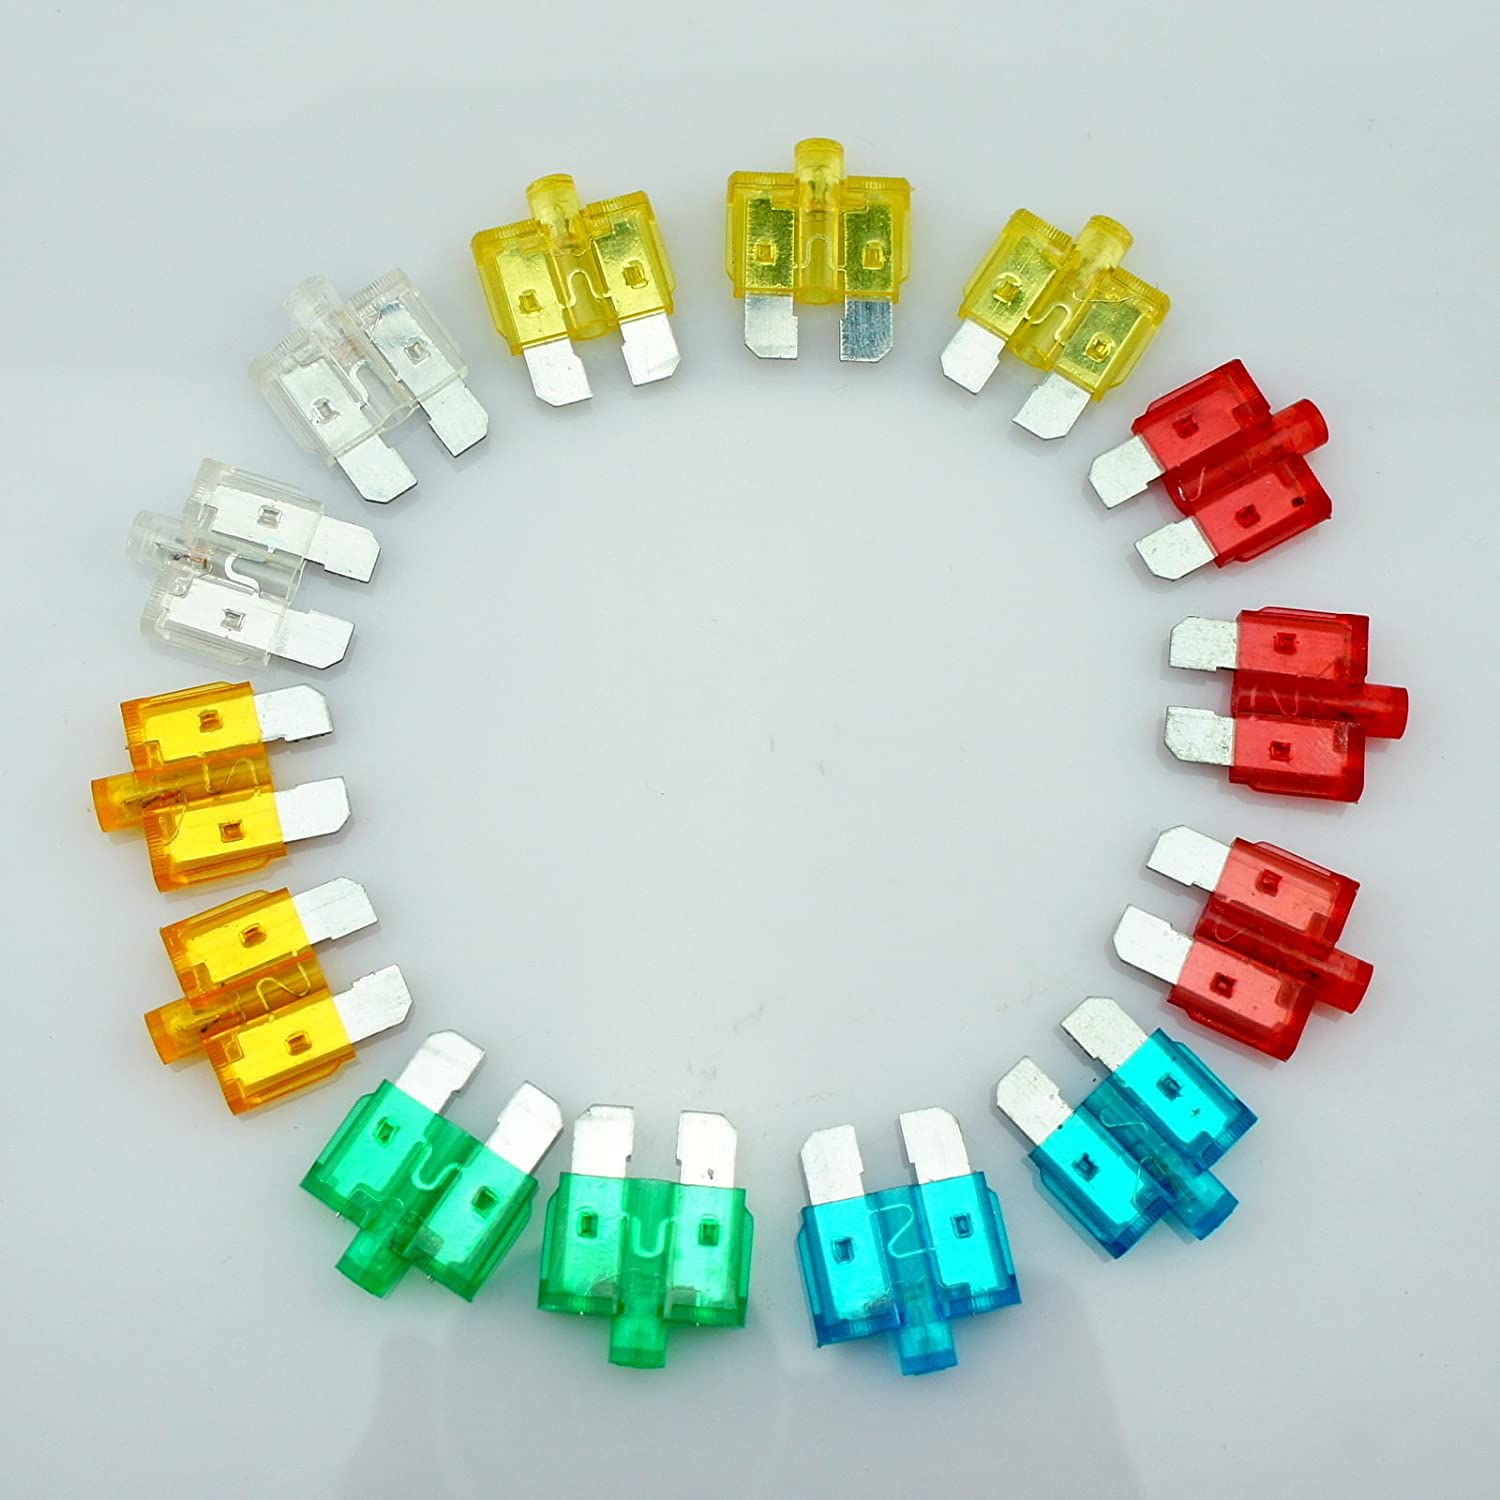 14 Car Vehicle ATU Standard Blade Fuse Assortment Kit With Status LED Glow Blow 5A 10A 15A 20A 25A 30A WLS